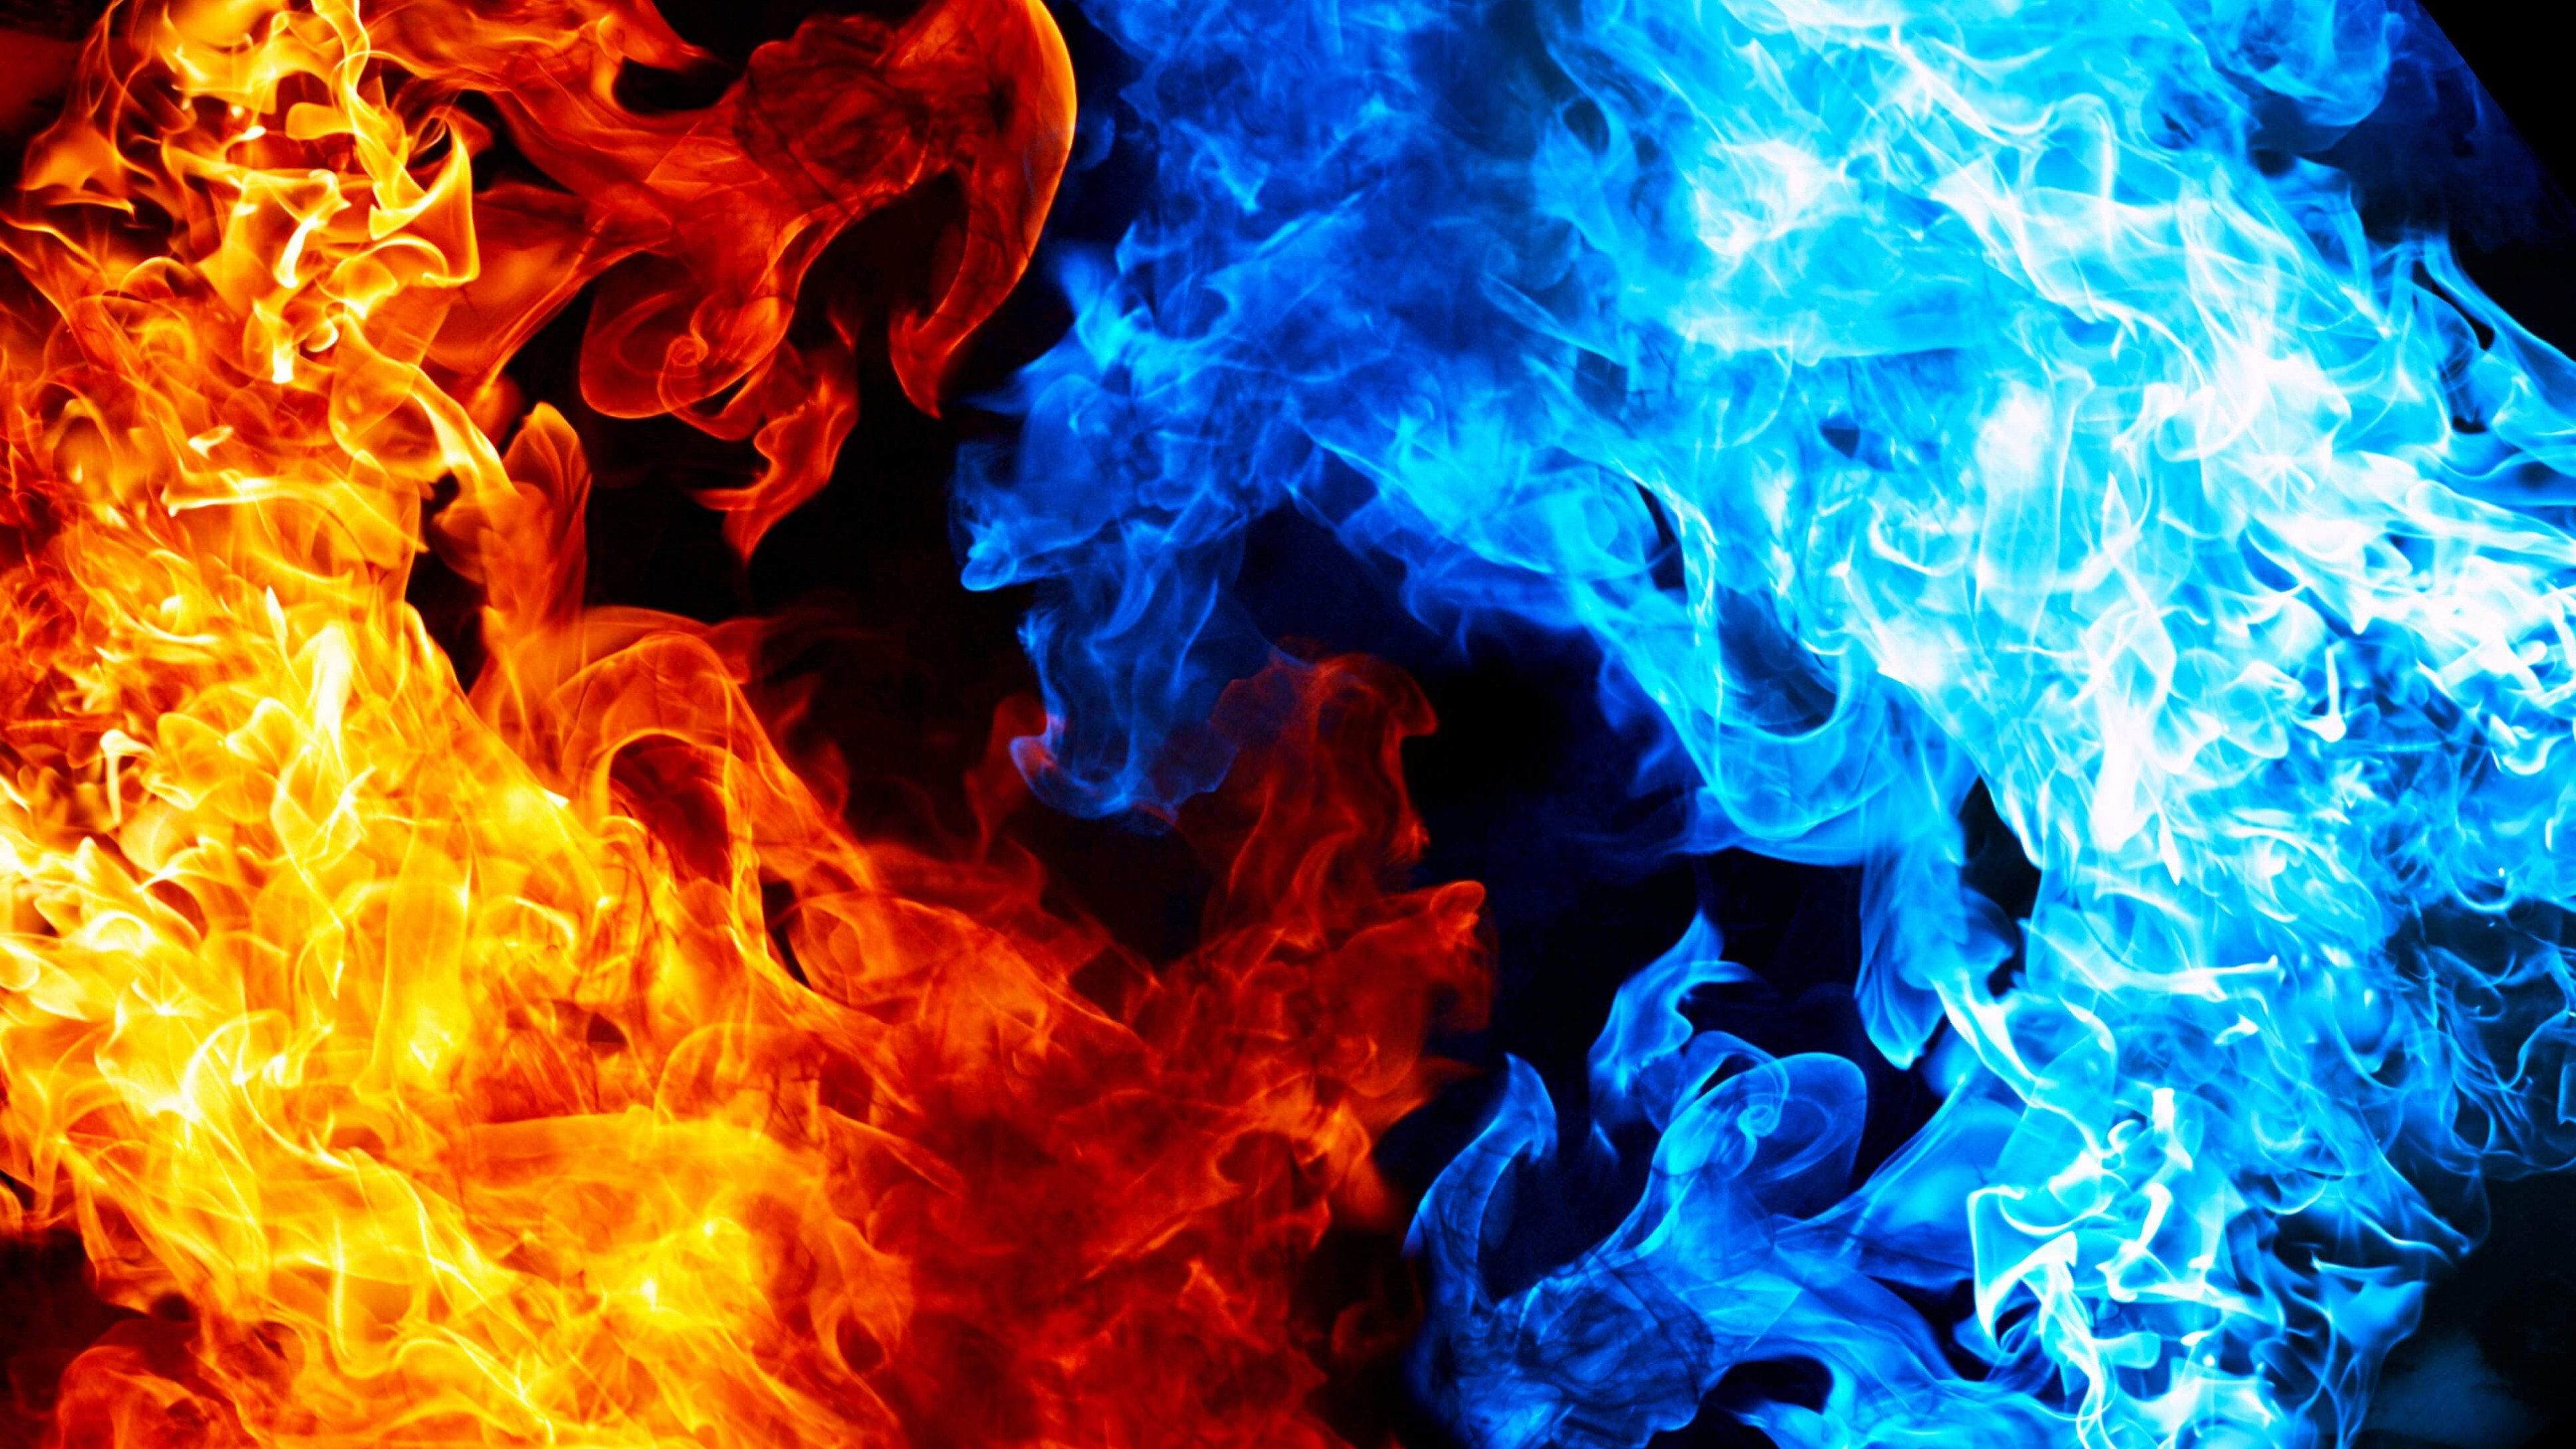 4k fire wallpapers high quality download free for Fire tumblr